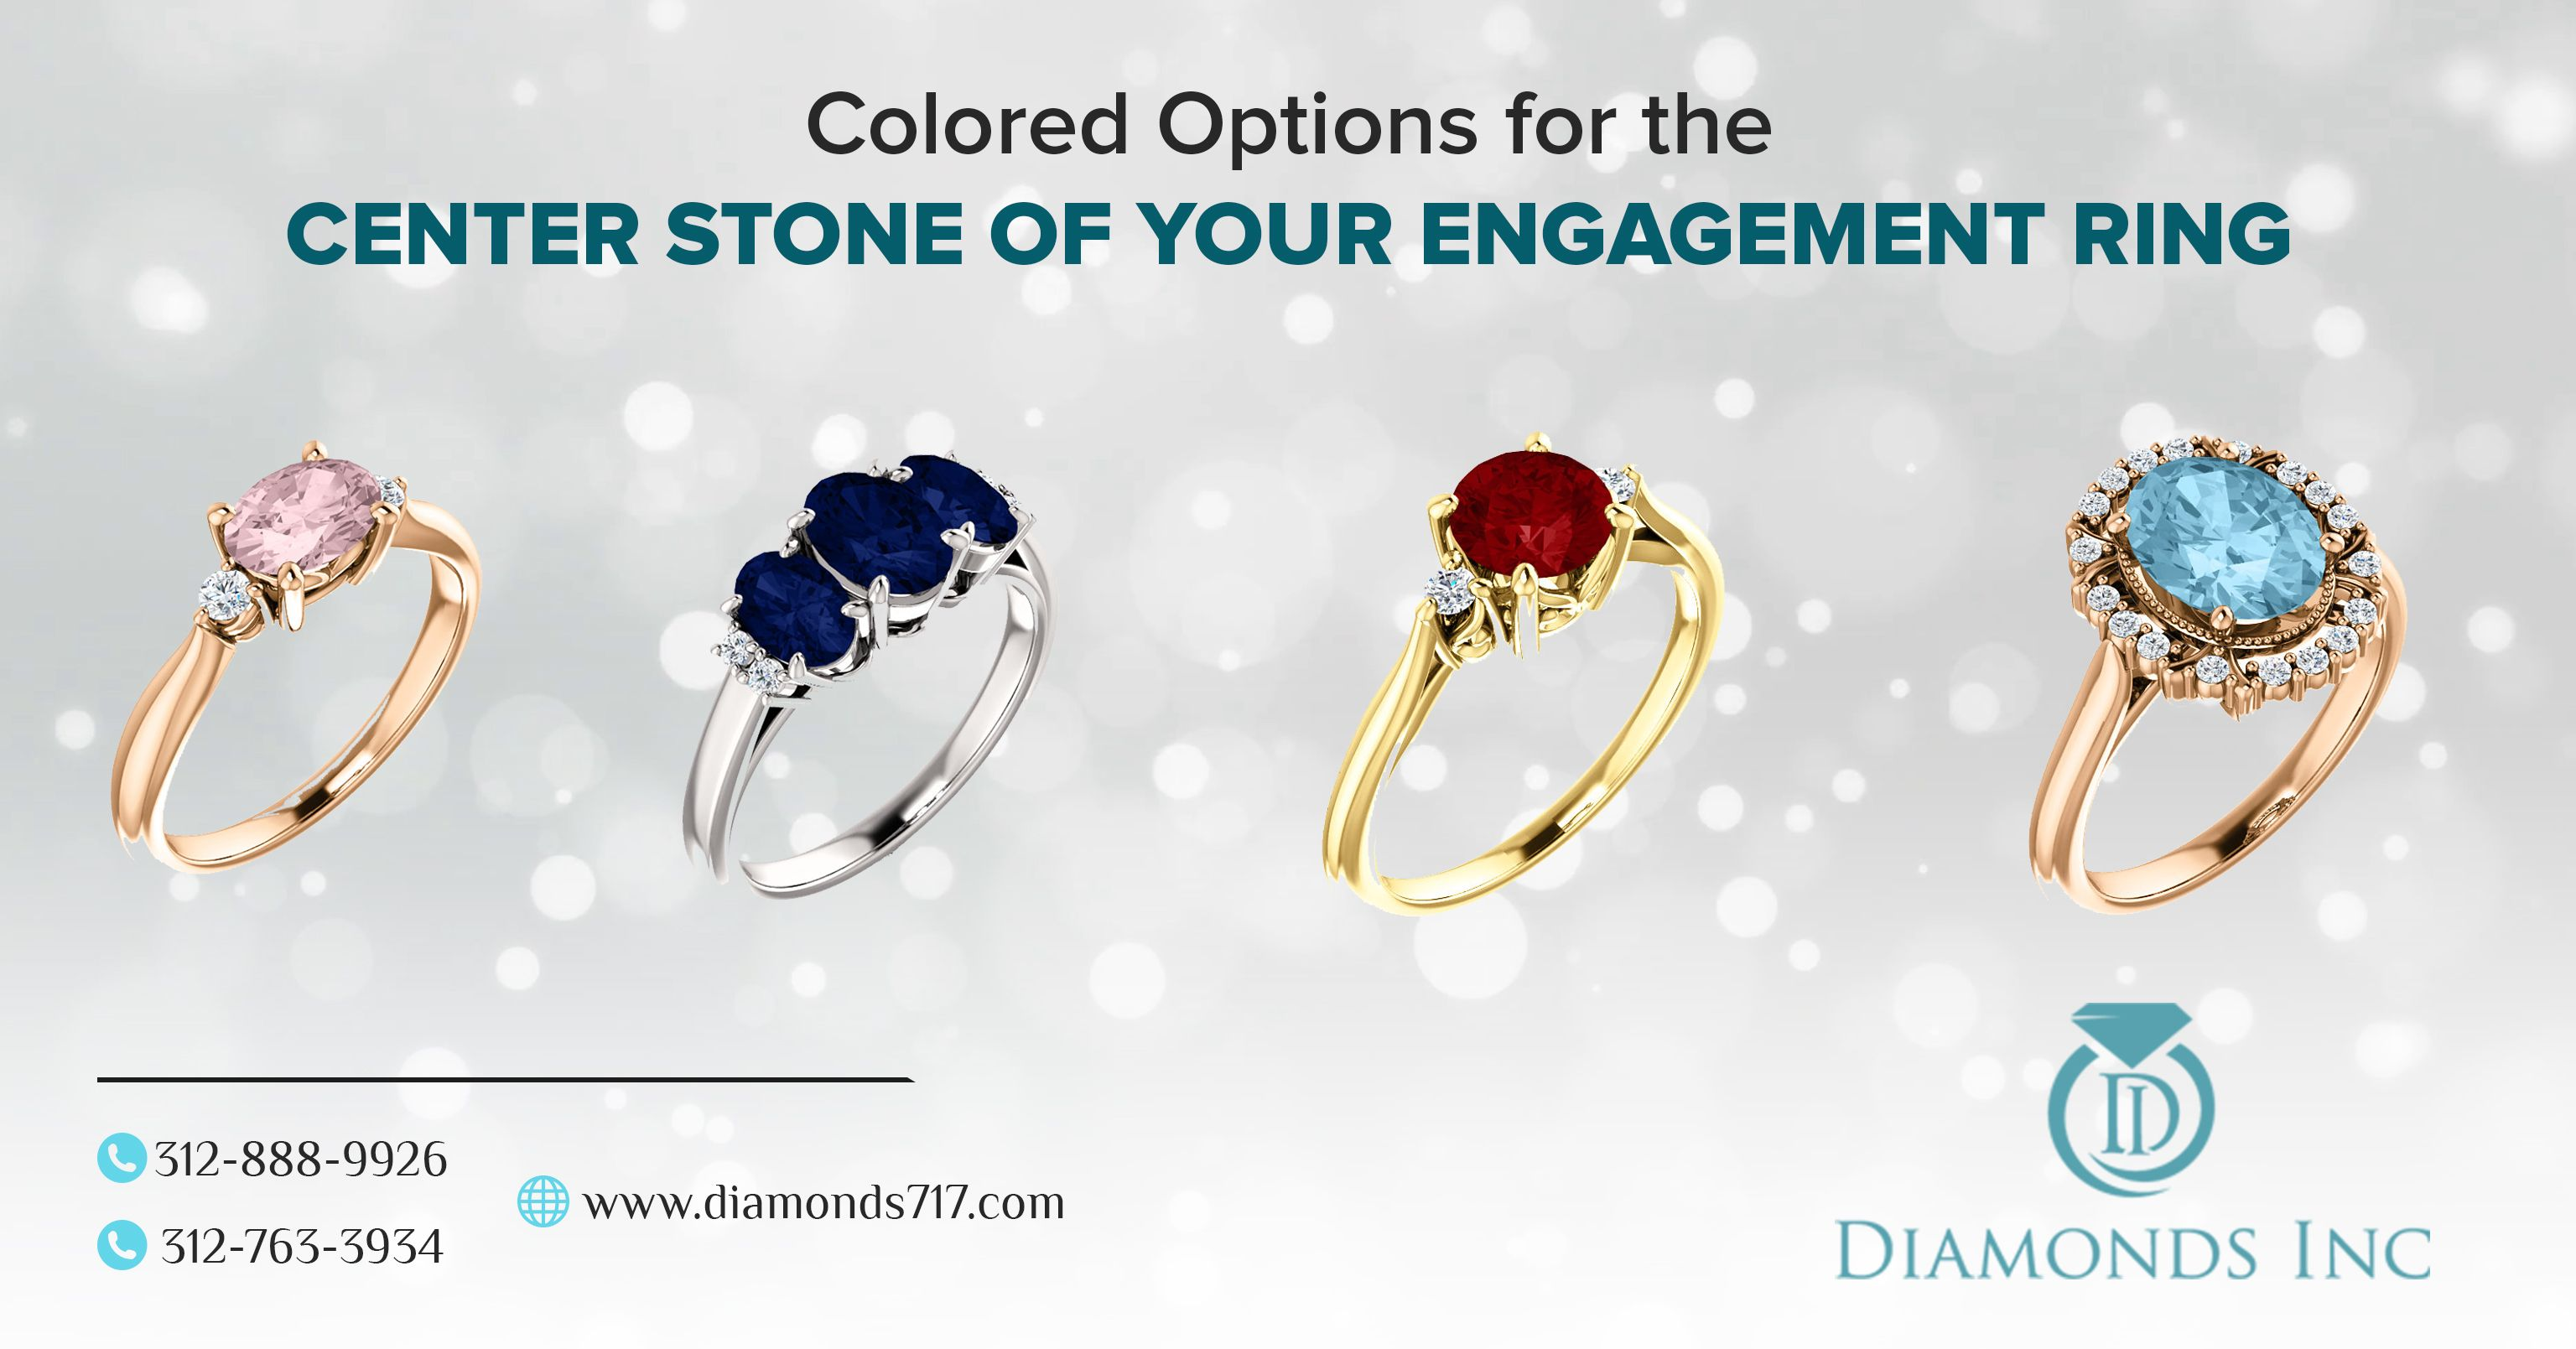 Colored Options For The Center Stone of Your Engagement Ring